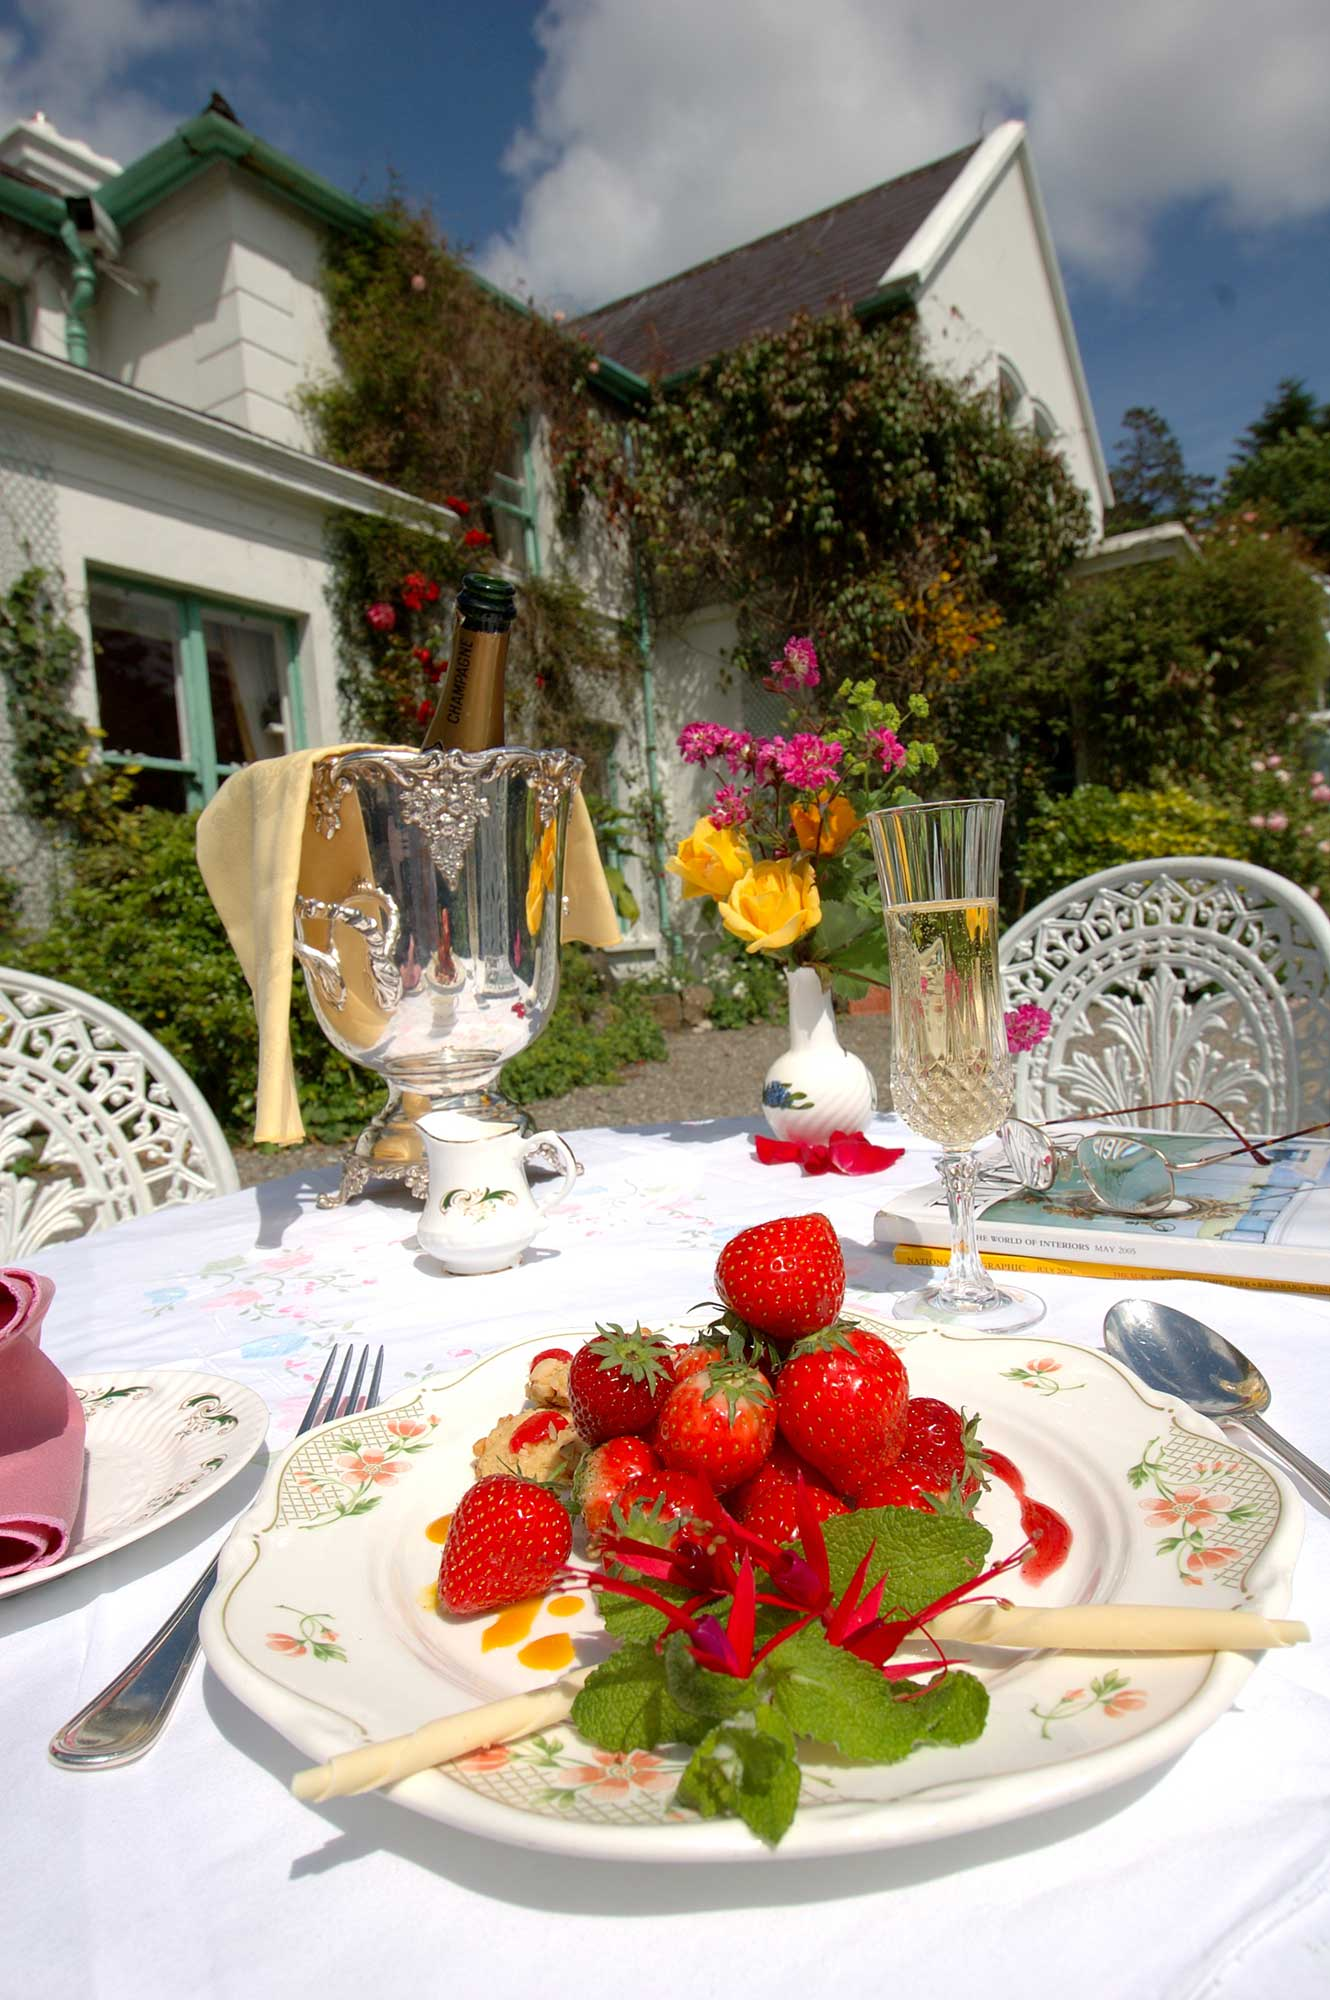 Connemara Hotel Accommodation with beautiful gardens for outdoor dining